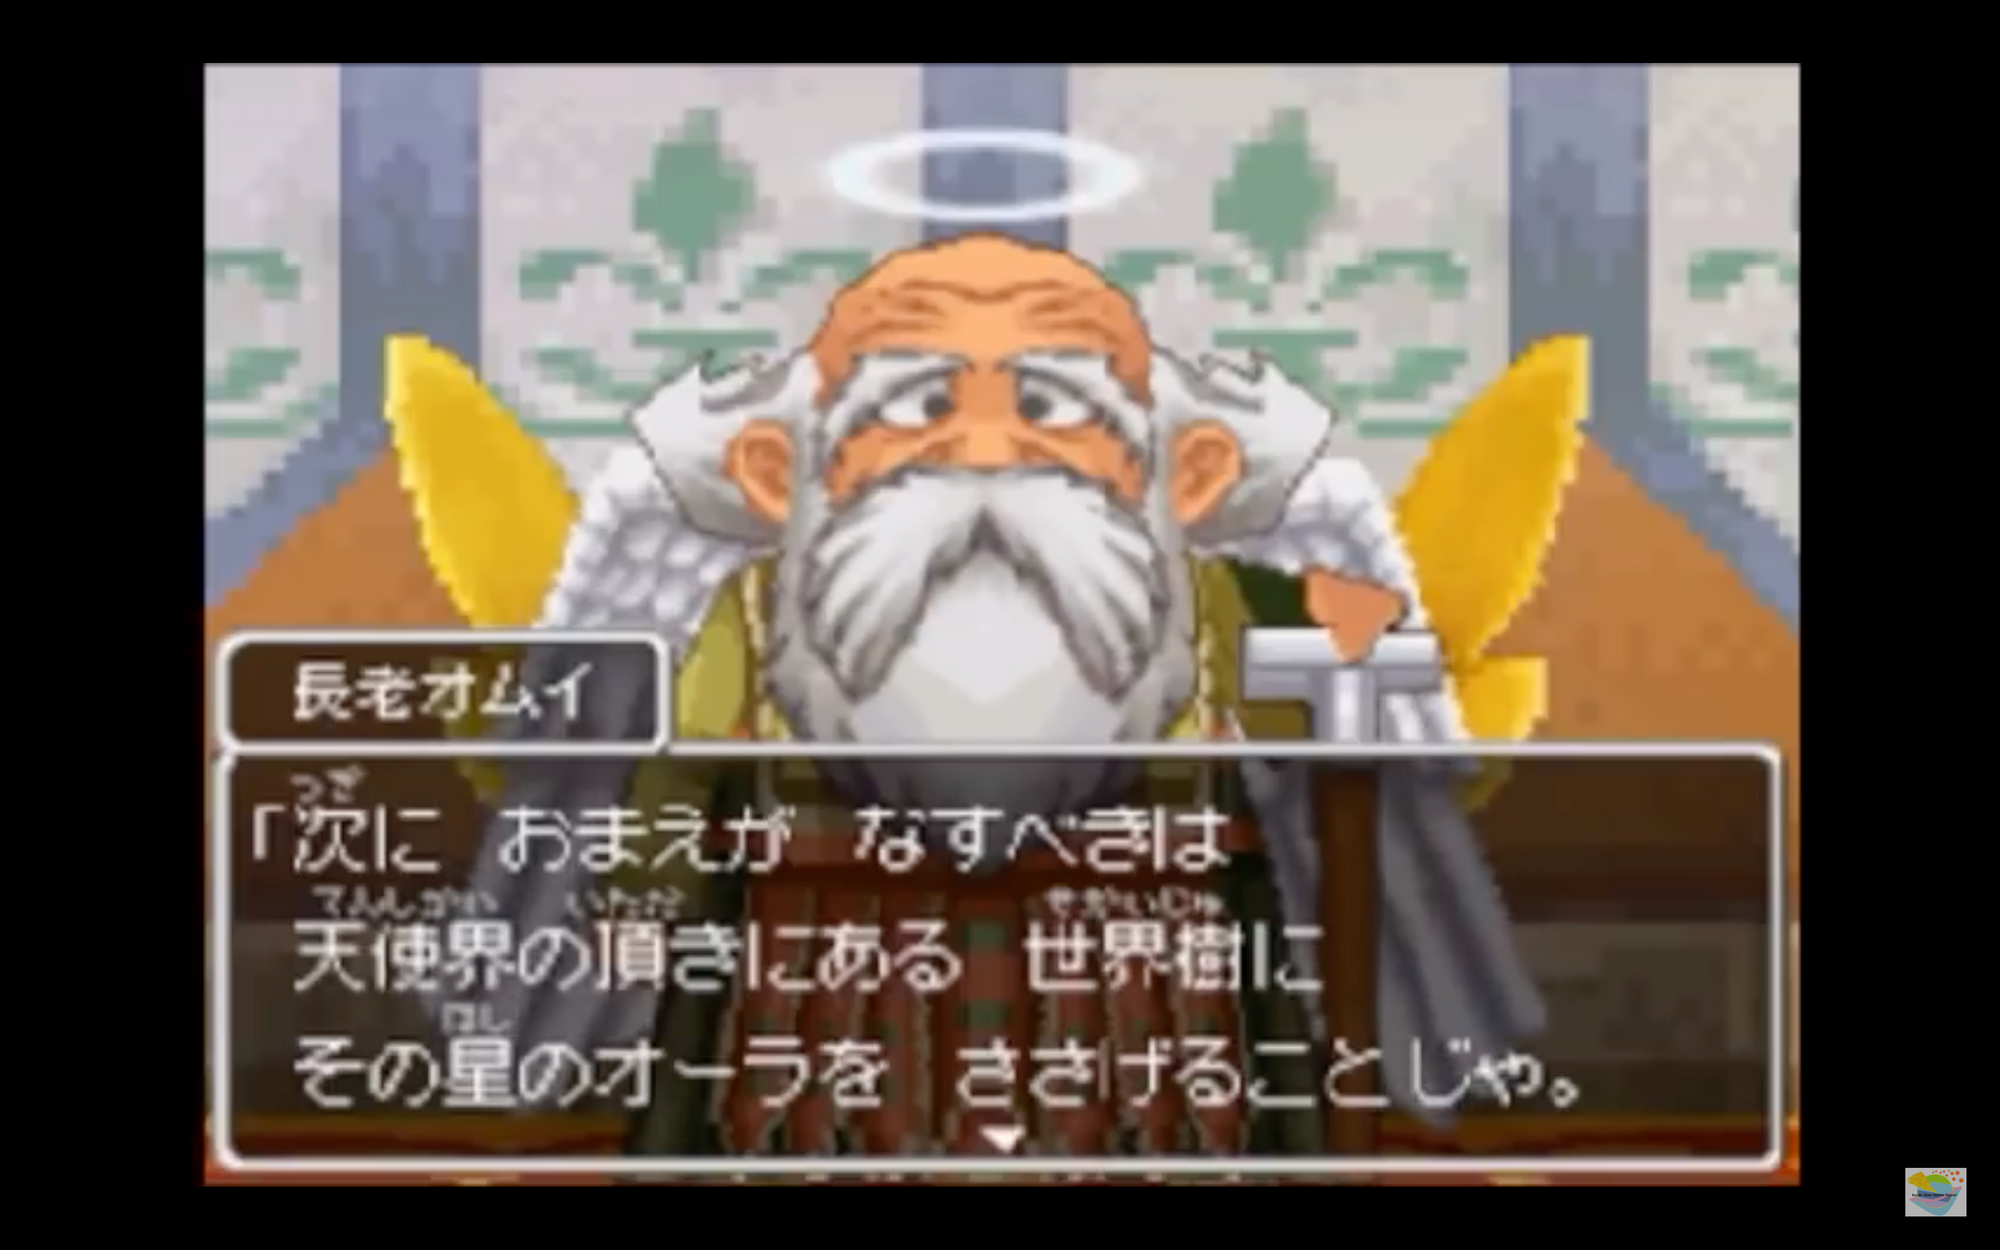 Old man giving instructions in Dragon Quest IX